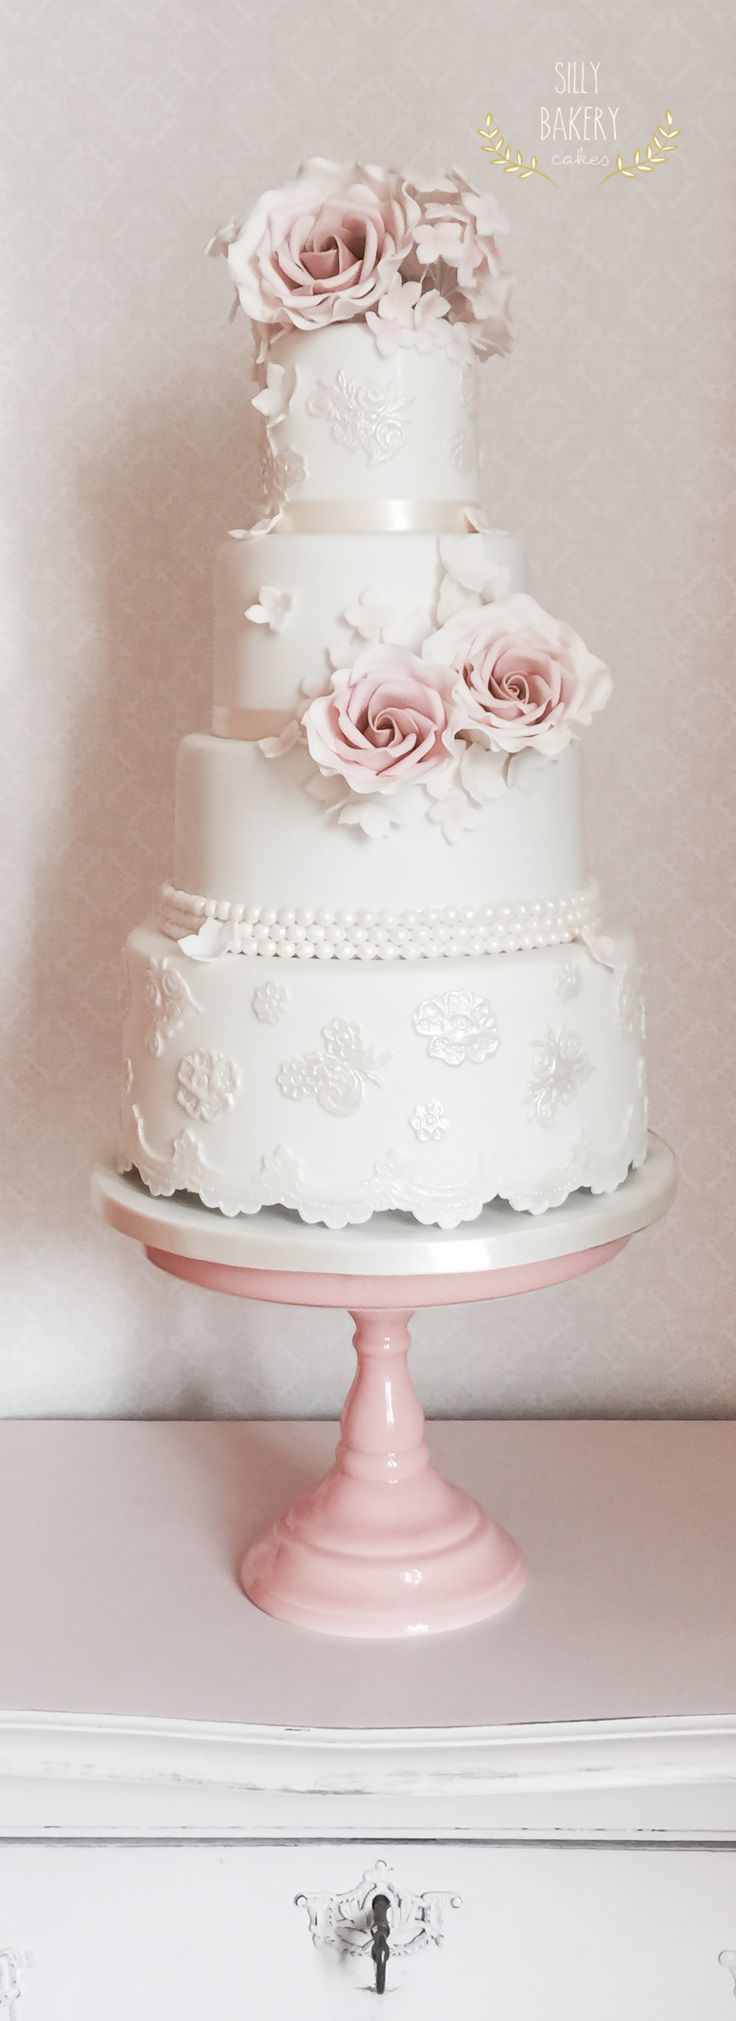 wedding-cakes-23-07142015-km